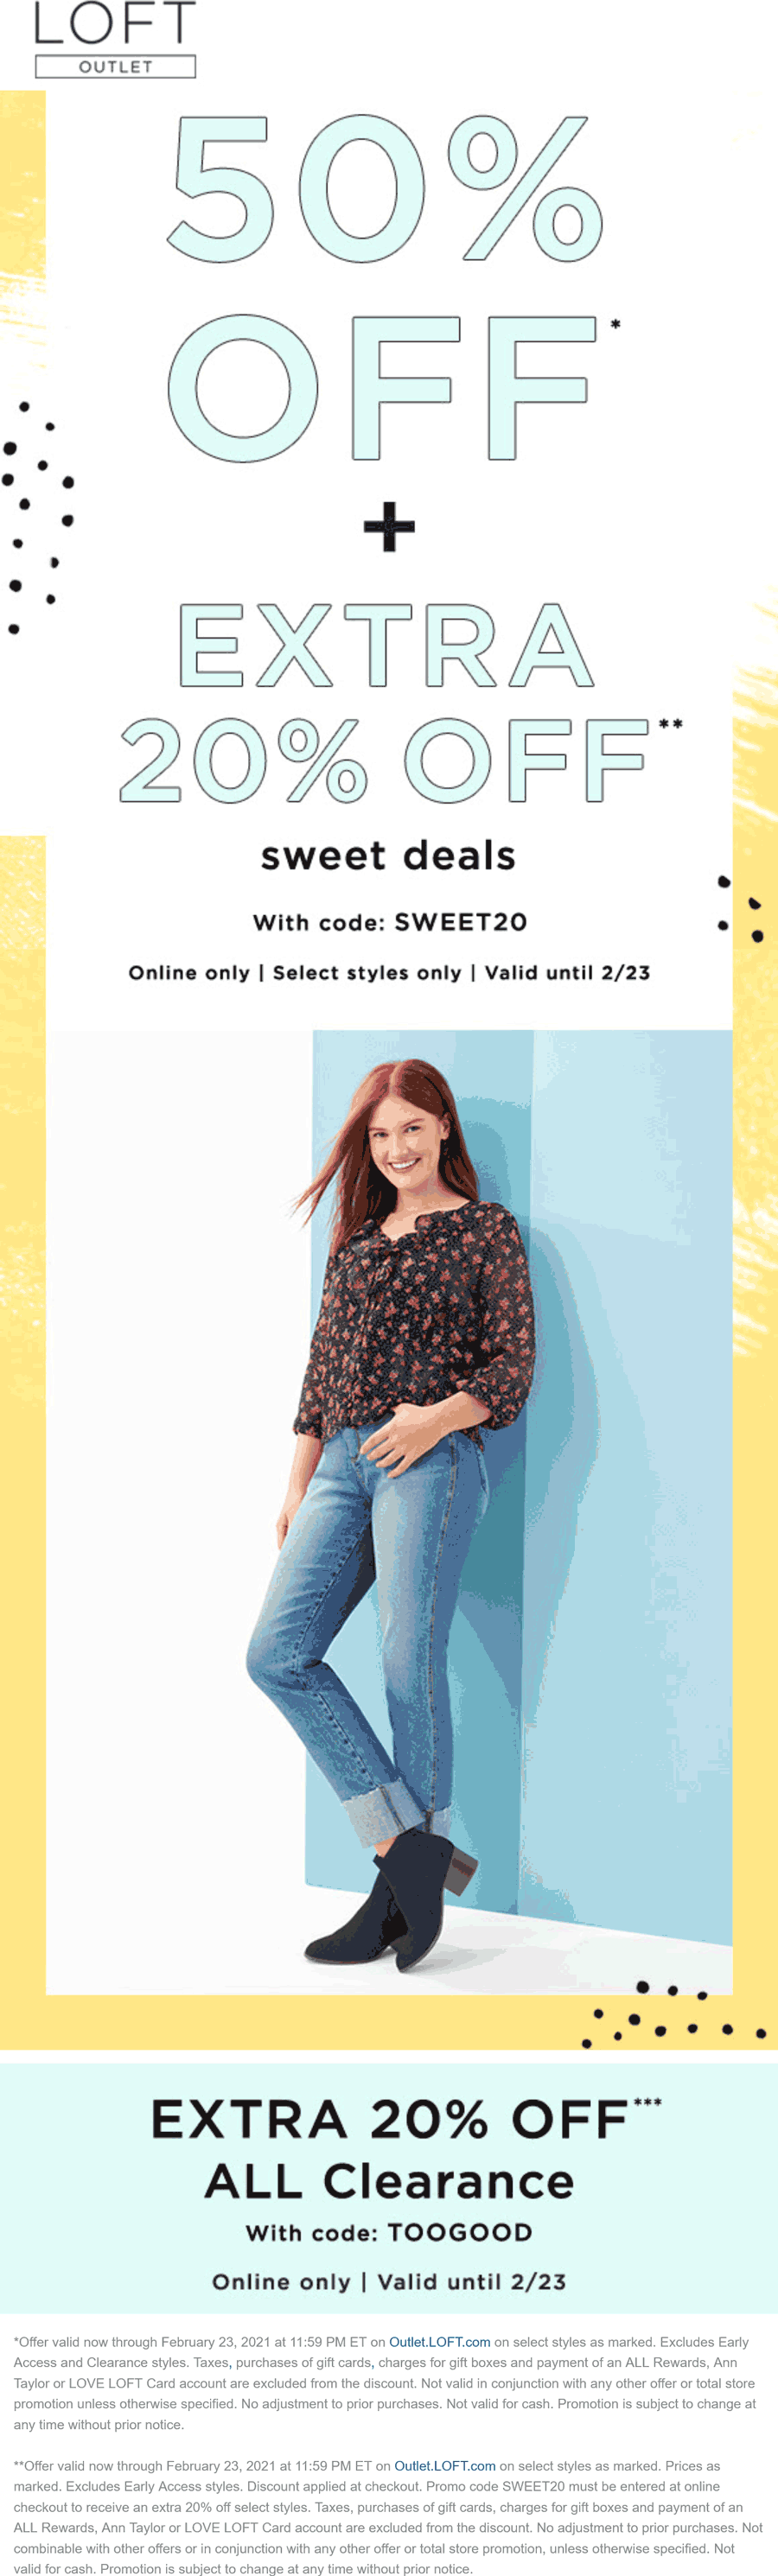 LOFT Outlet coupons & promo code for [April 2021]